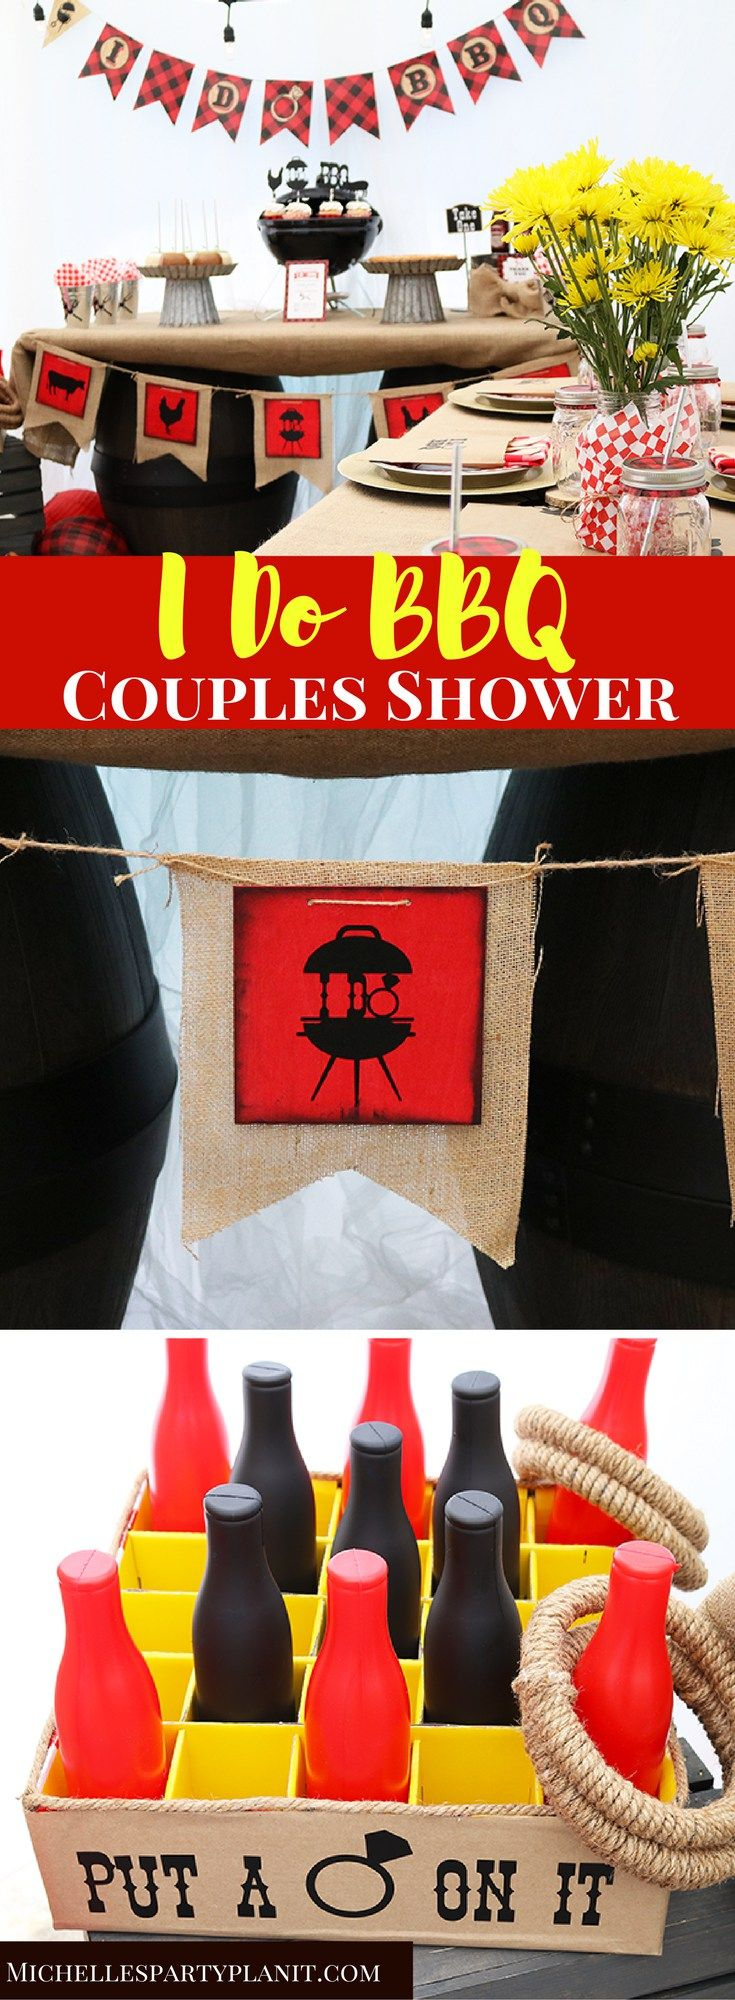 games to play at couples wedding shower%0A I Do BBQ Couples Wedding Shower